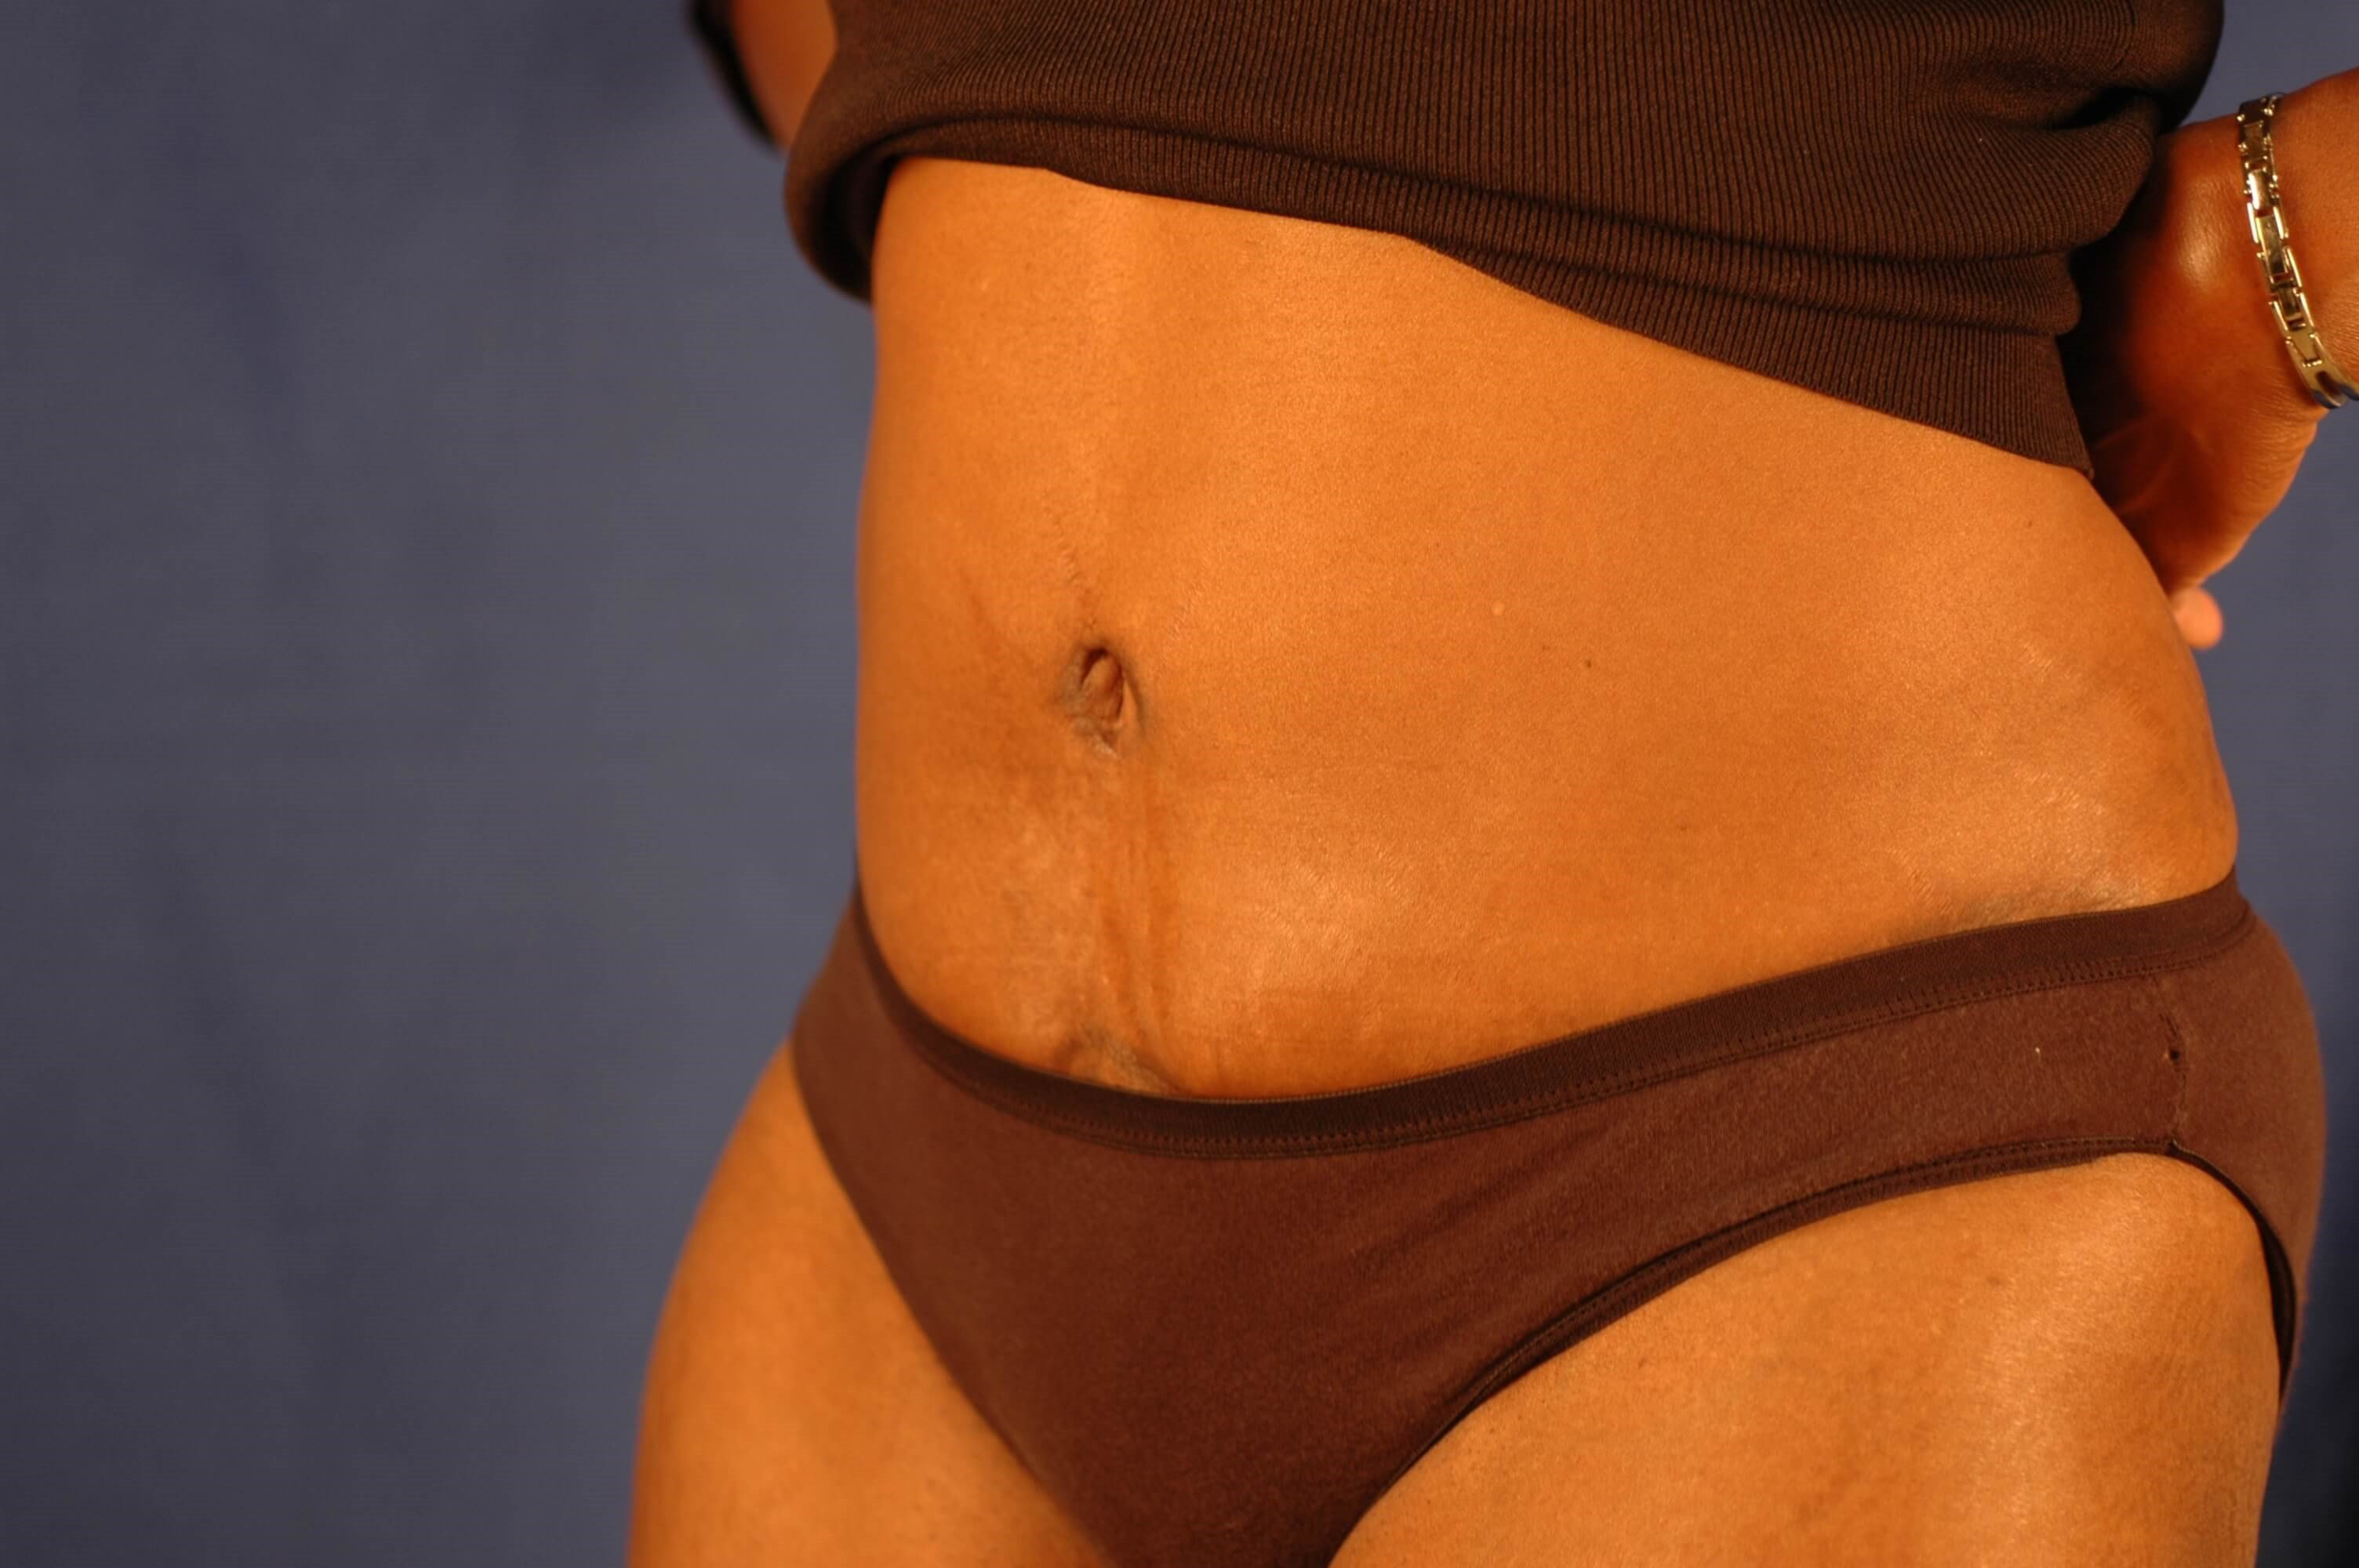 Newport Beach Tummy Tuck Oblique View After